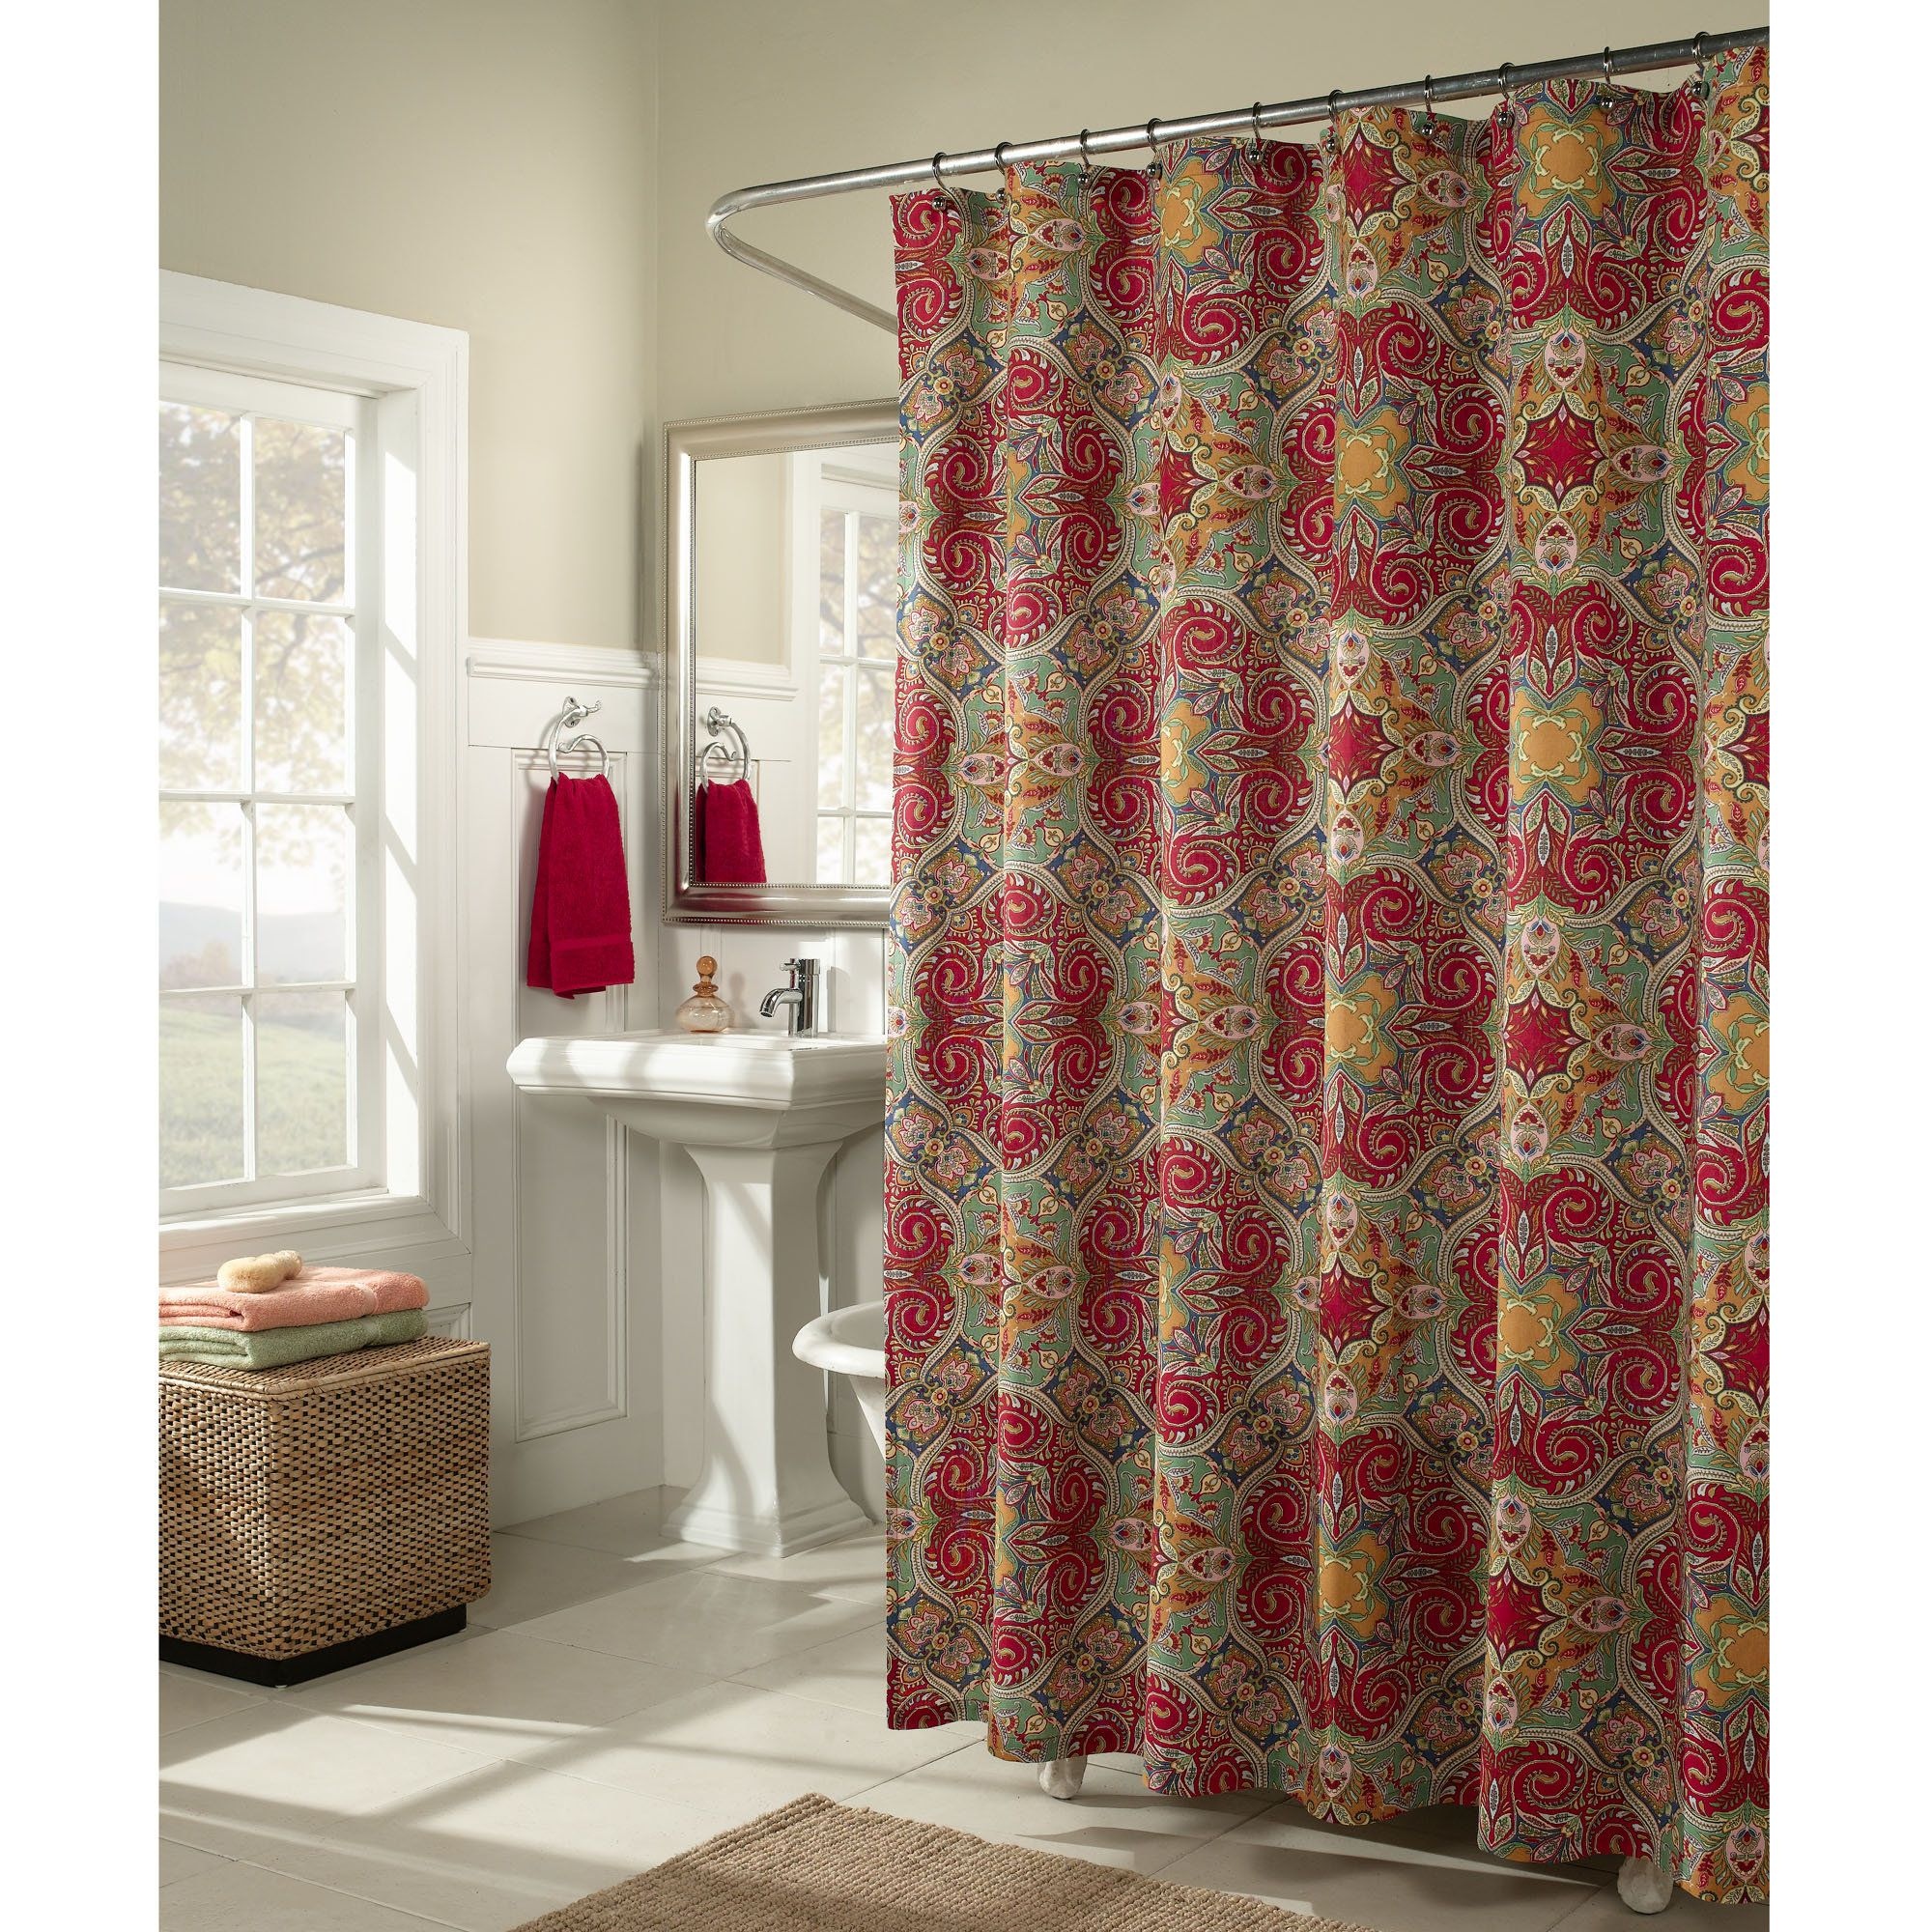 Paisley Shower Curtains Fabric Home Kashmir Fabric Shower